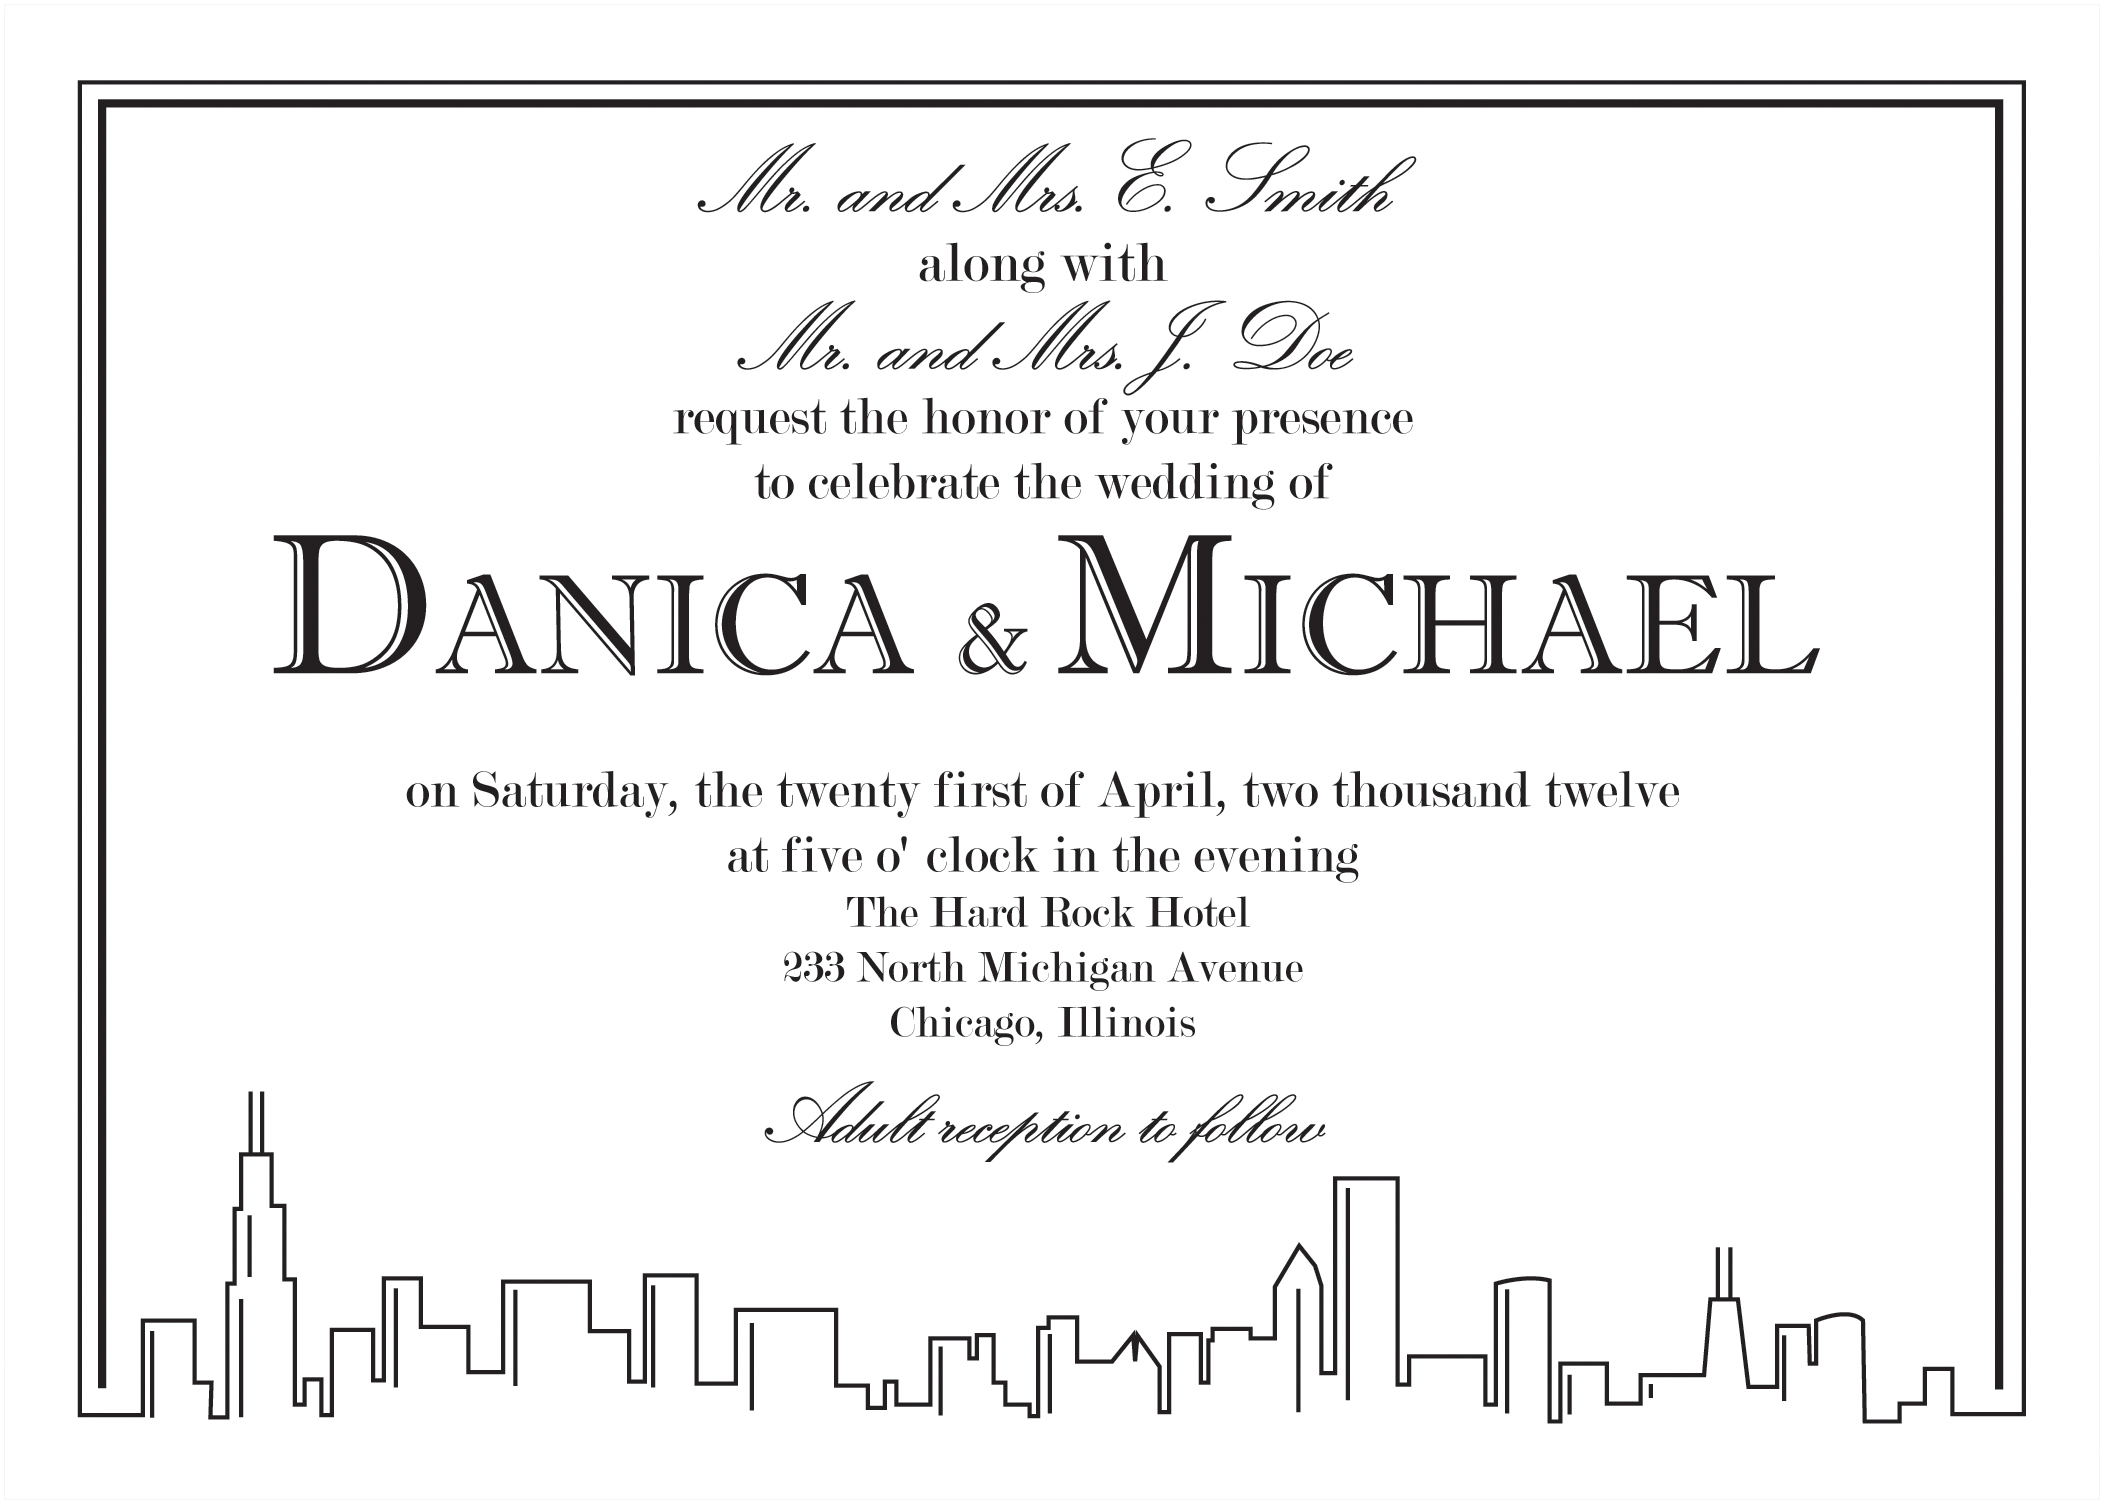 Part of a wedding invitation set (invite, RSVP, enclosure card, place card, etc.) designed to the bride